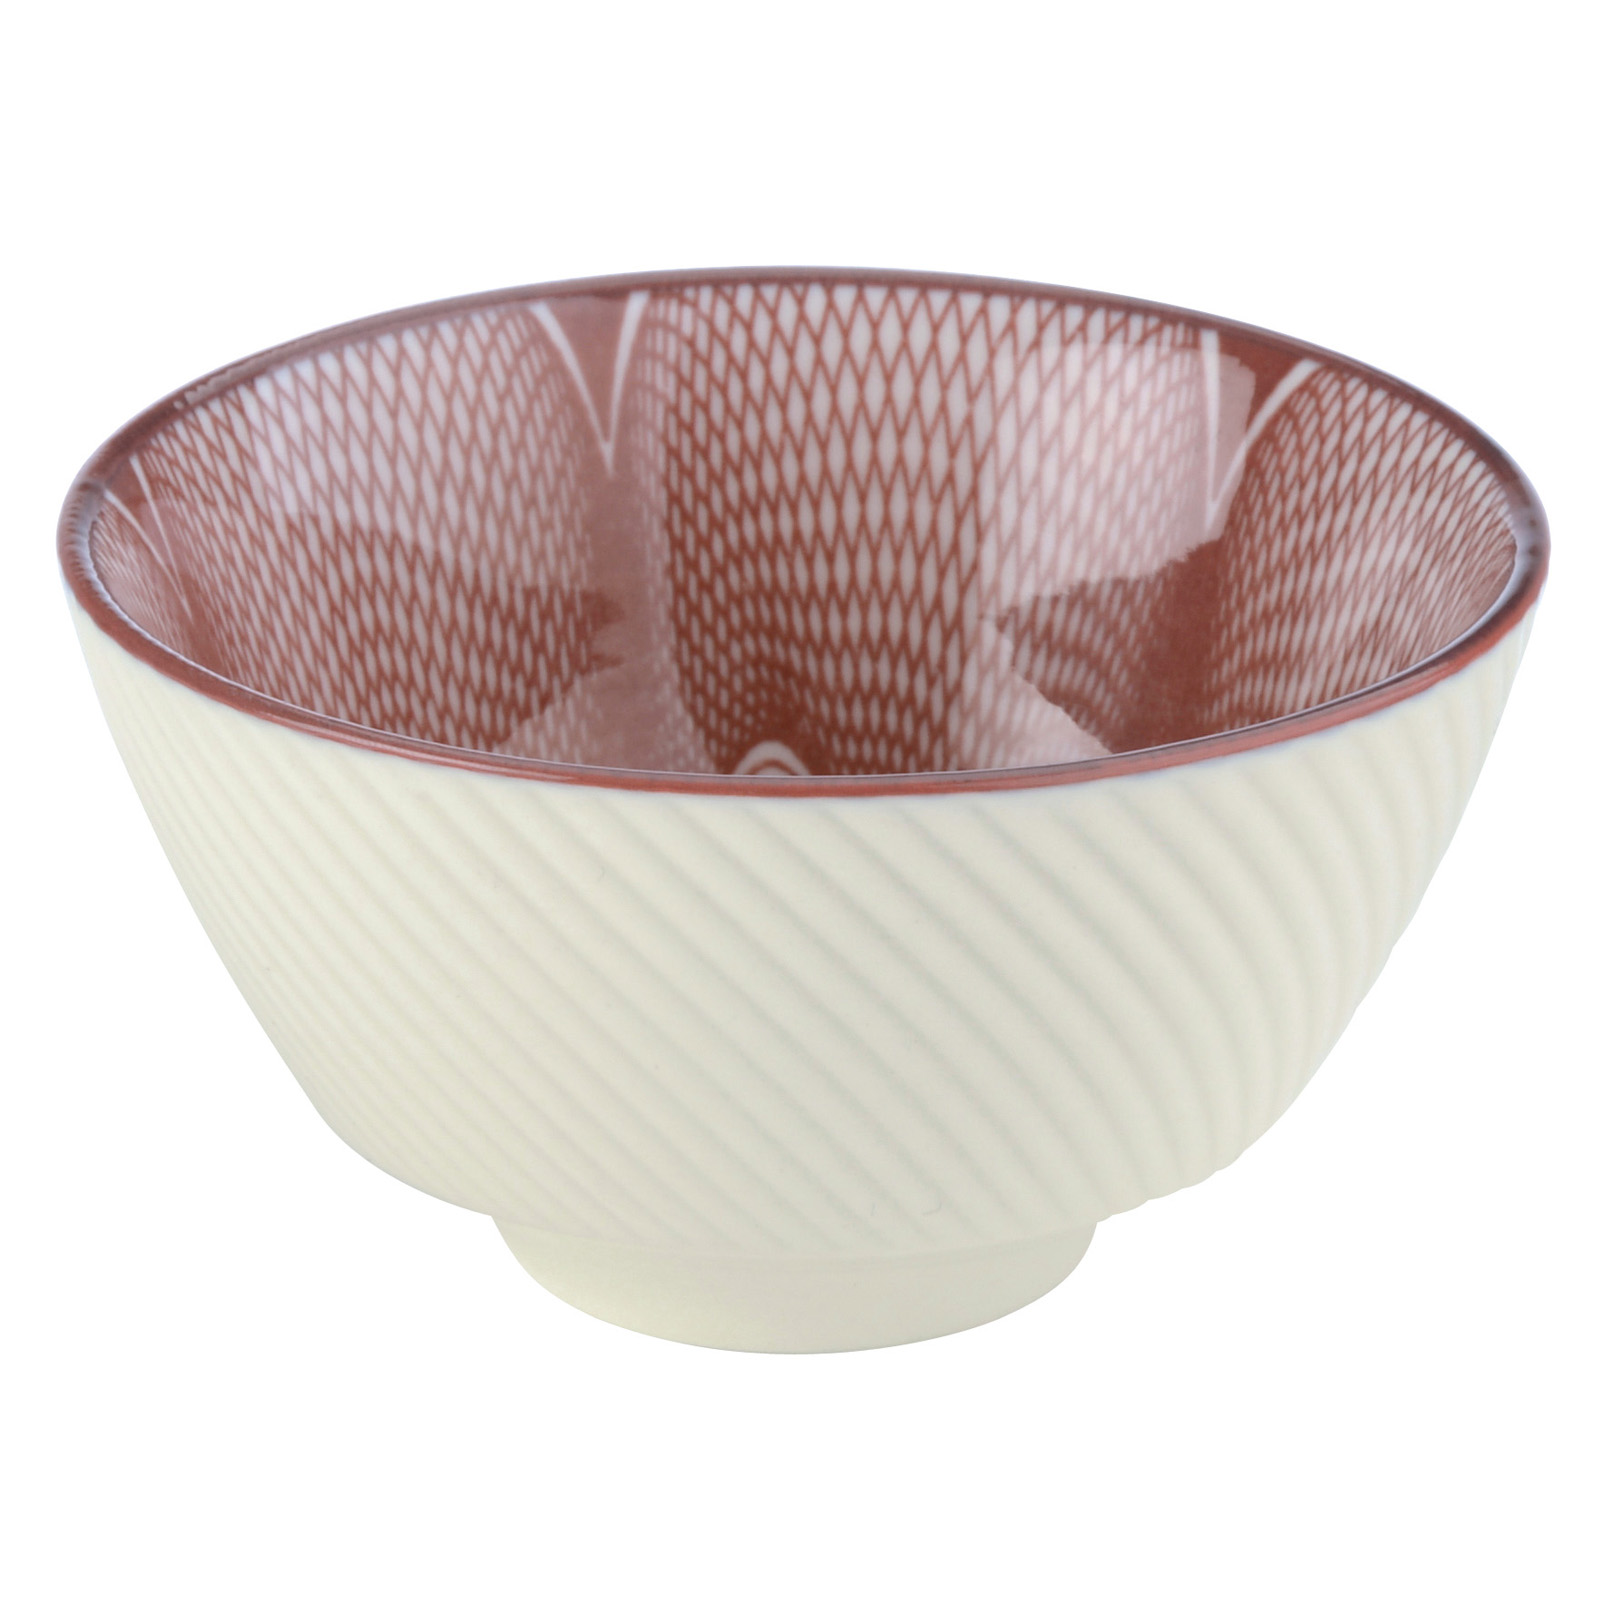 Set of 12 Spyro Tea Bowls Plum by BIA